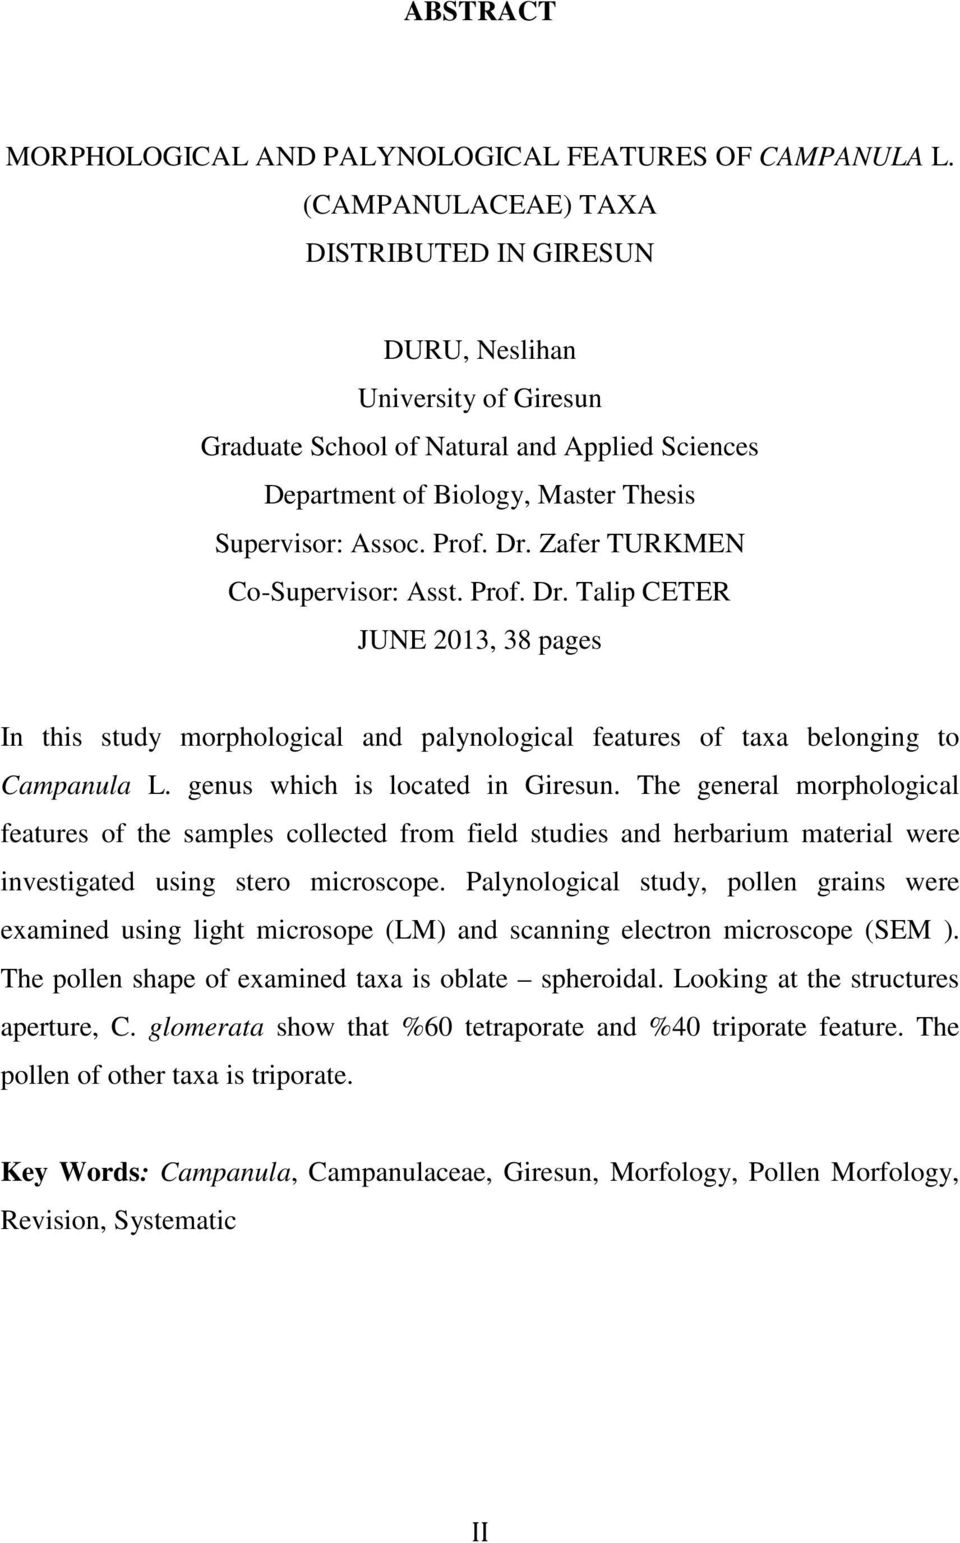 Zafer TURKMEN Co-Supervisor: Asst. Prof. Dr. Talip CETER JUNE 2013, 38 pages In this study morphological and palynological features of taxa belonging to Campanula L. genus which is located in Giresun.